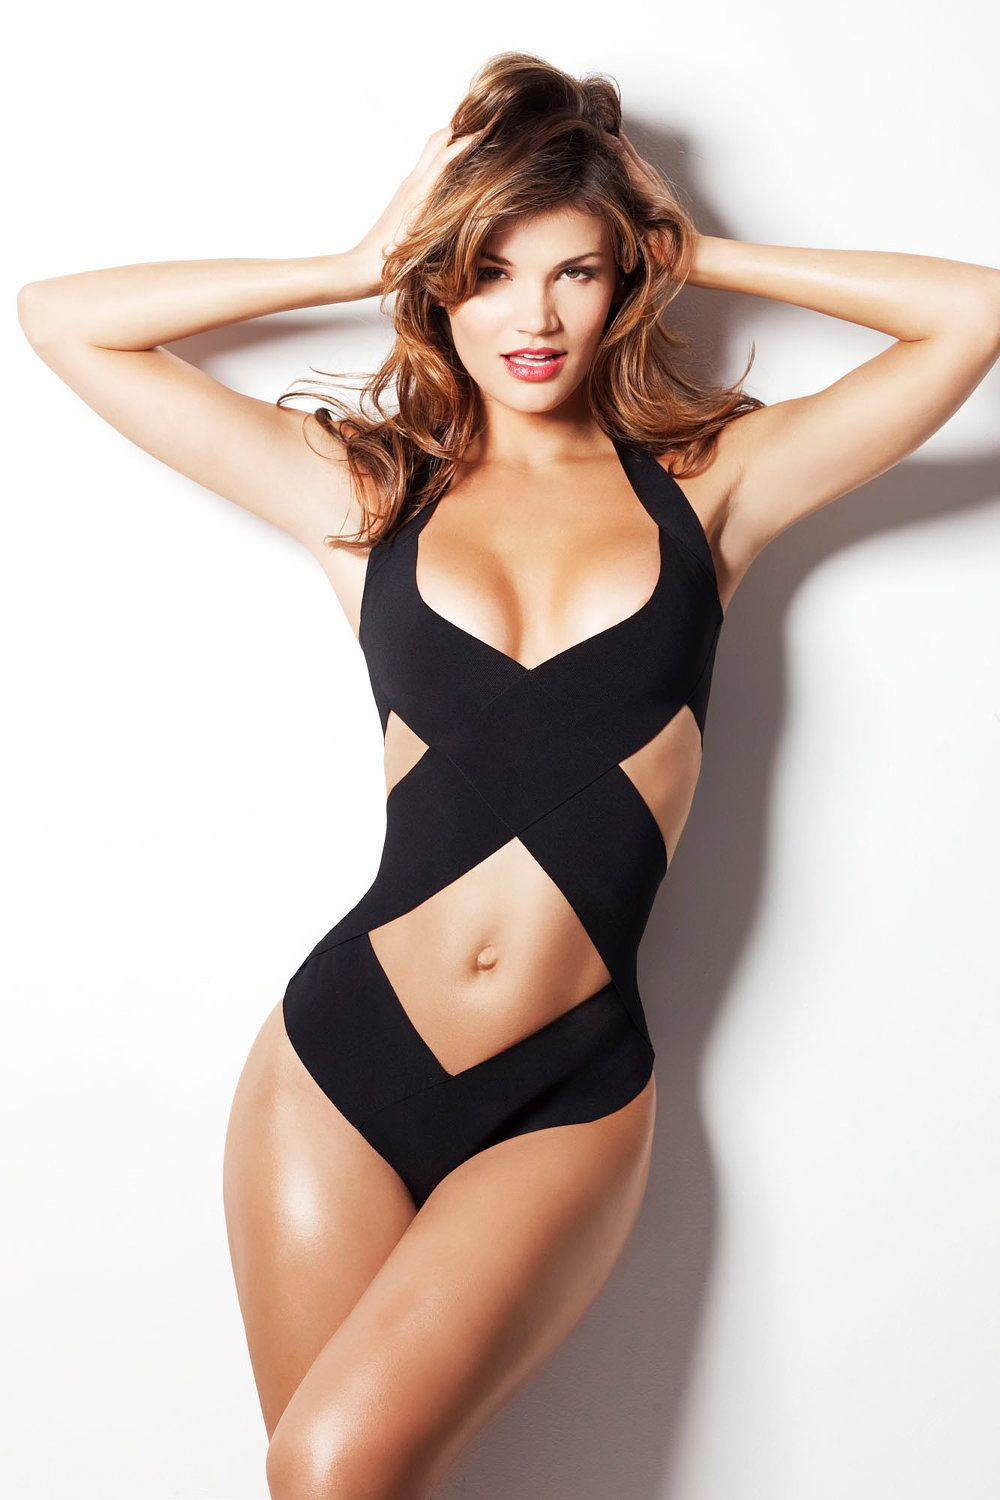 Holy Sexy Batman If I Had This Body I Would Go Somewhere Tropical Rock This Business W Bubbaloo